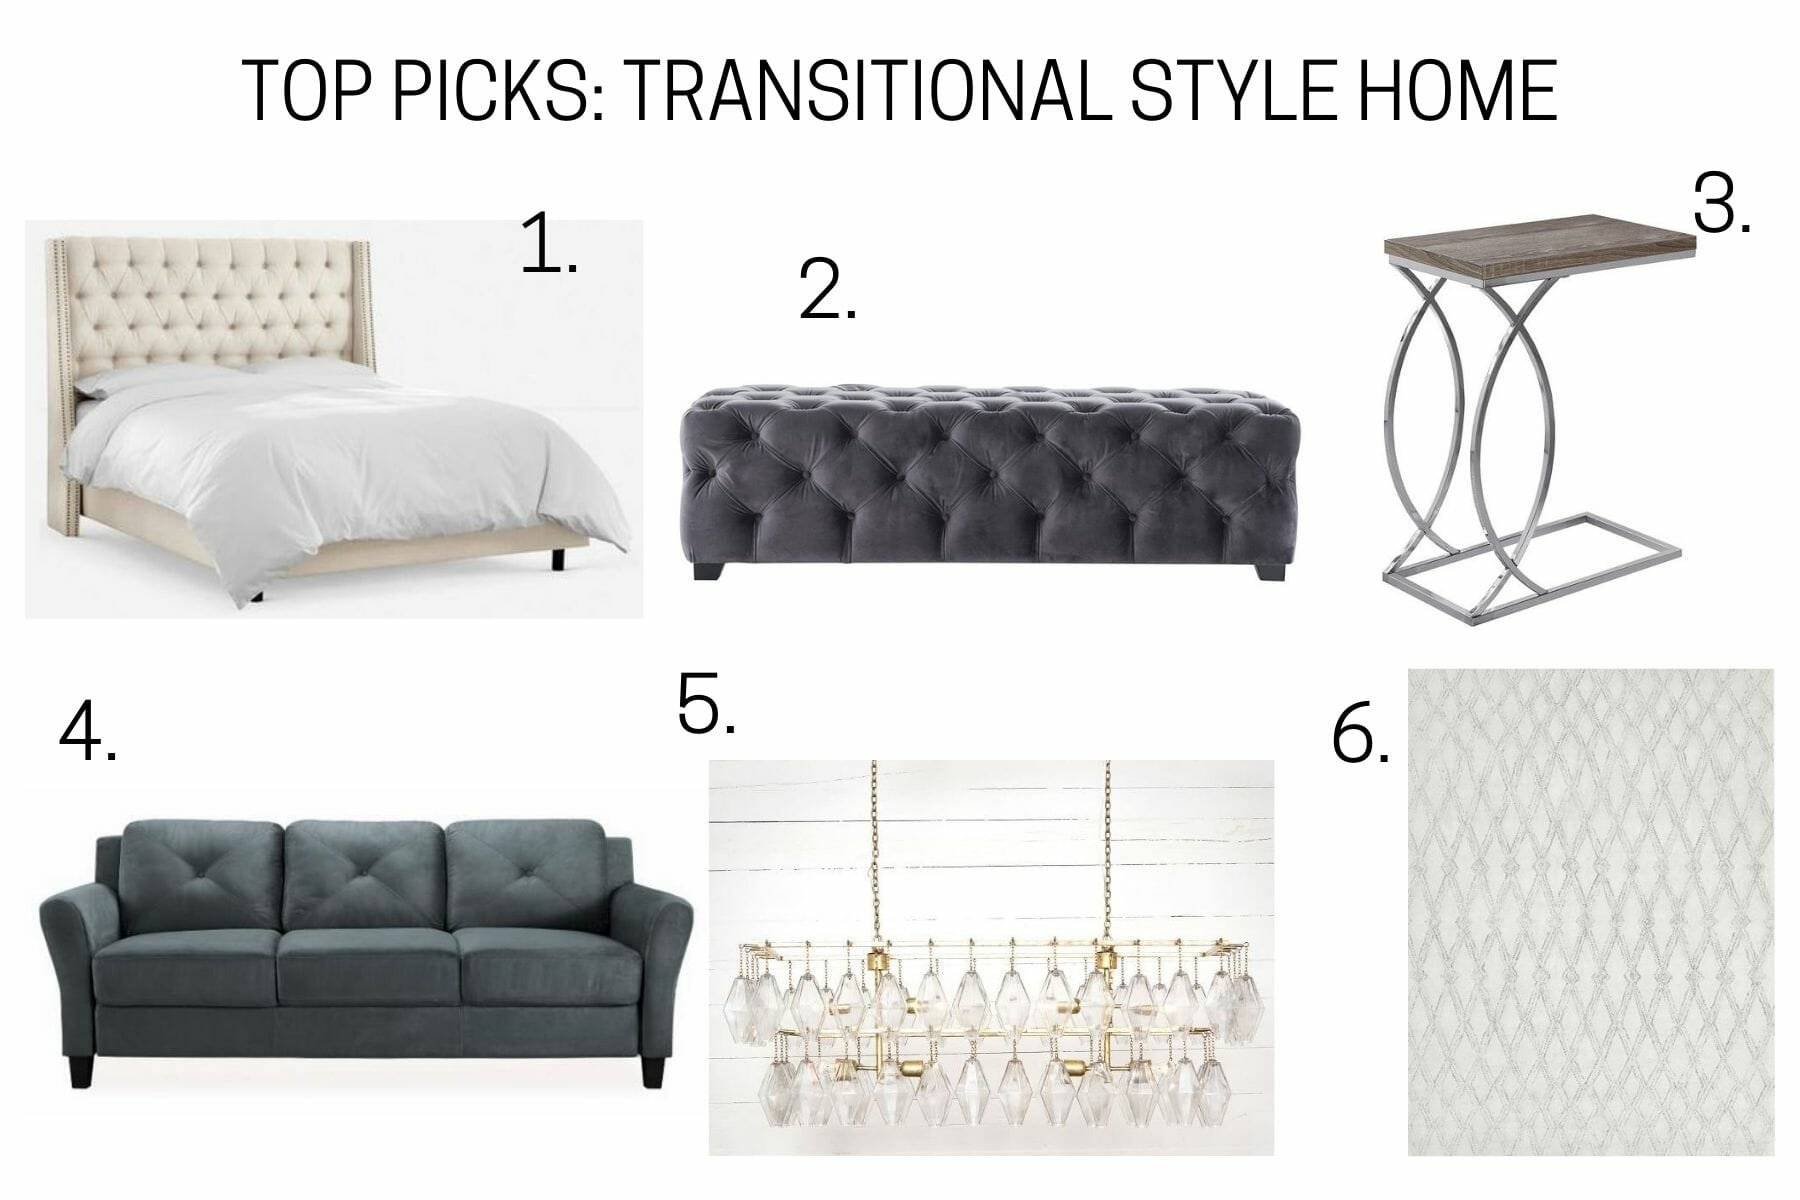 Transitional style home top picks